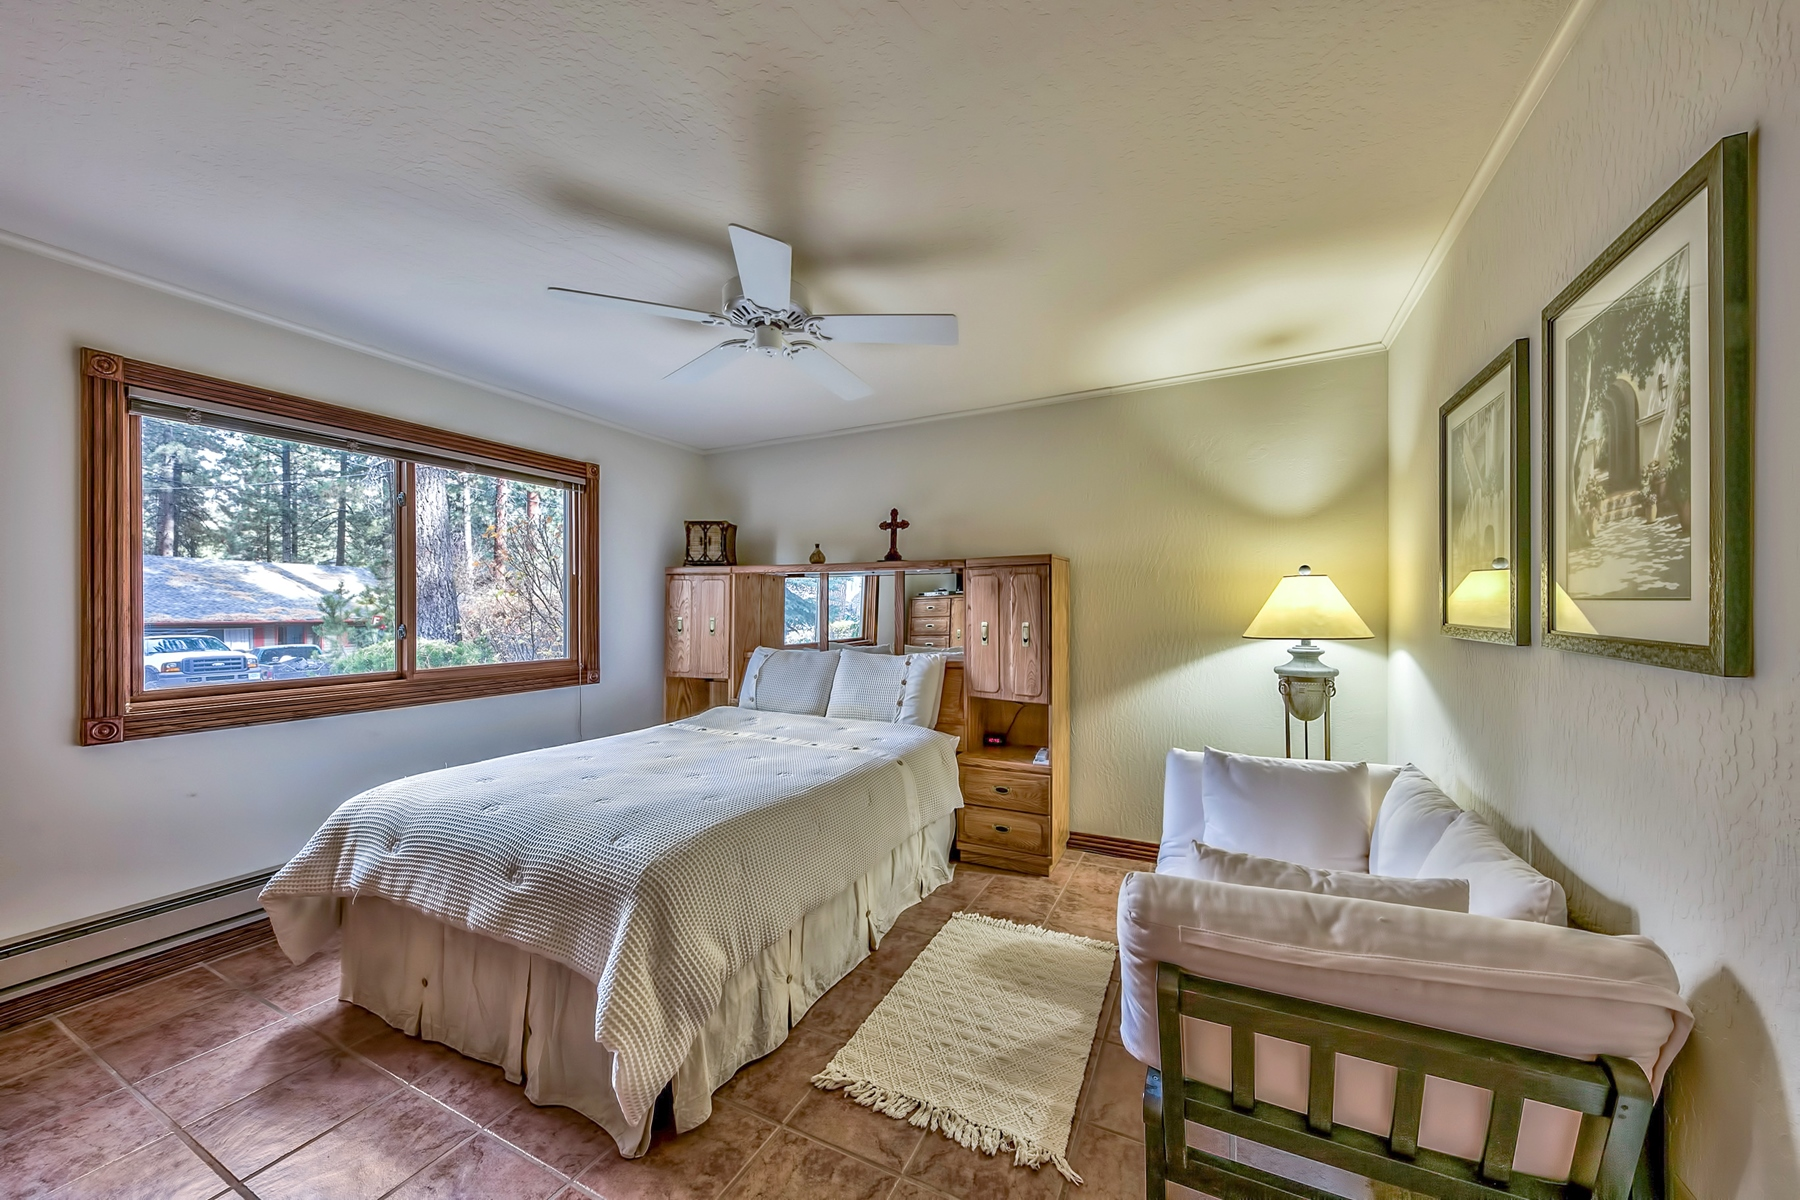 Additional photo for property listing at 1095 Deer Cliff Drive, Zephyr Cove, Nv 89448 1095 Deer Cliff Drive Zephyr Cove, Nevada 89448 United States